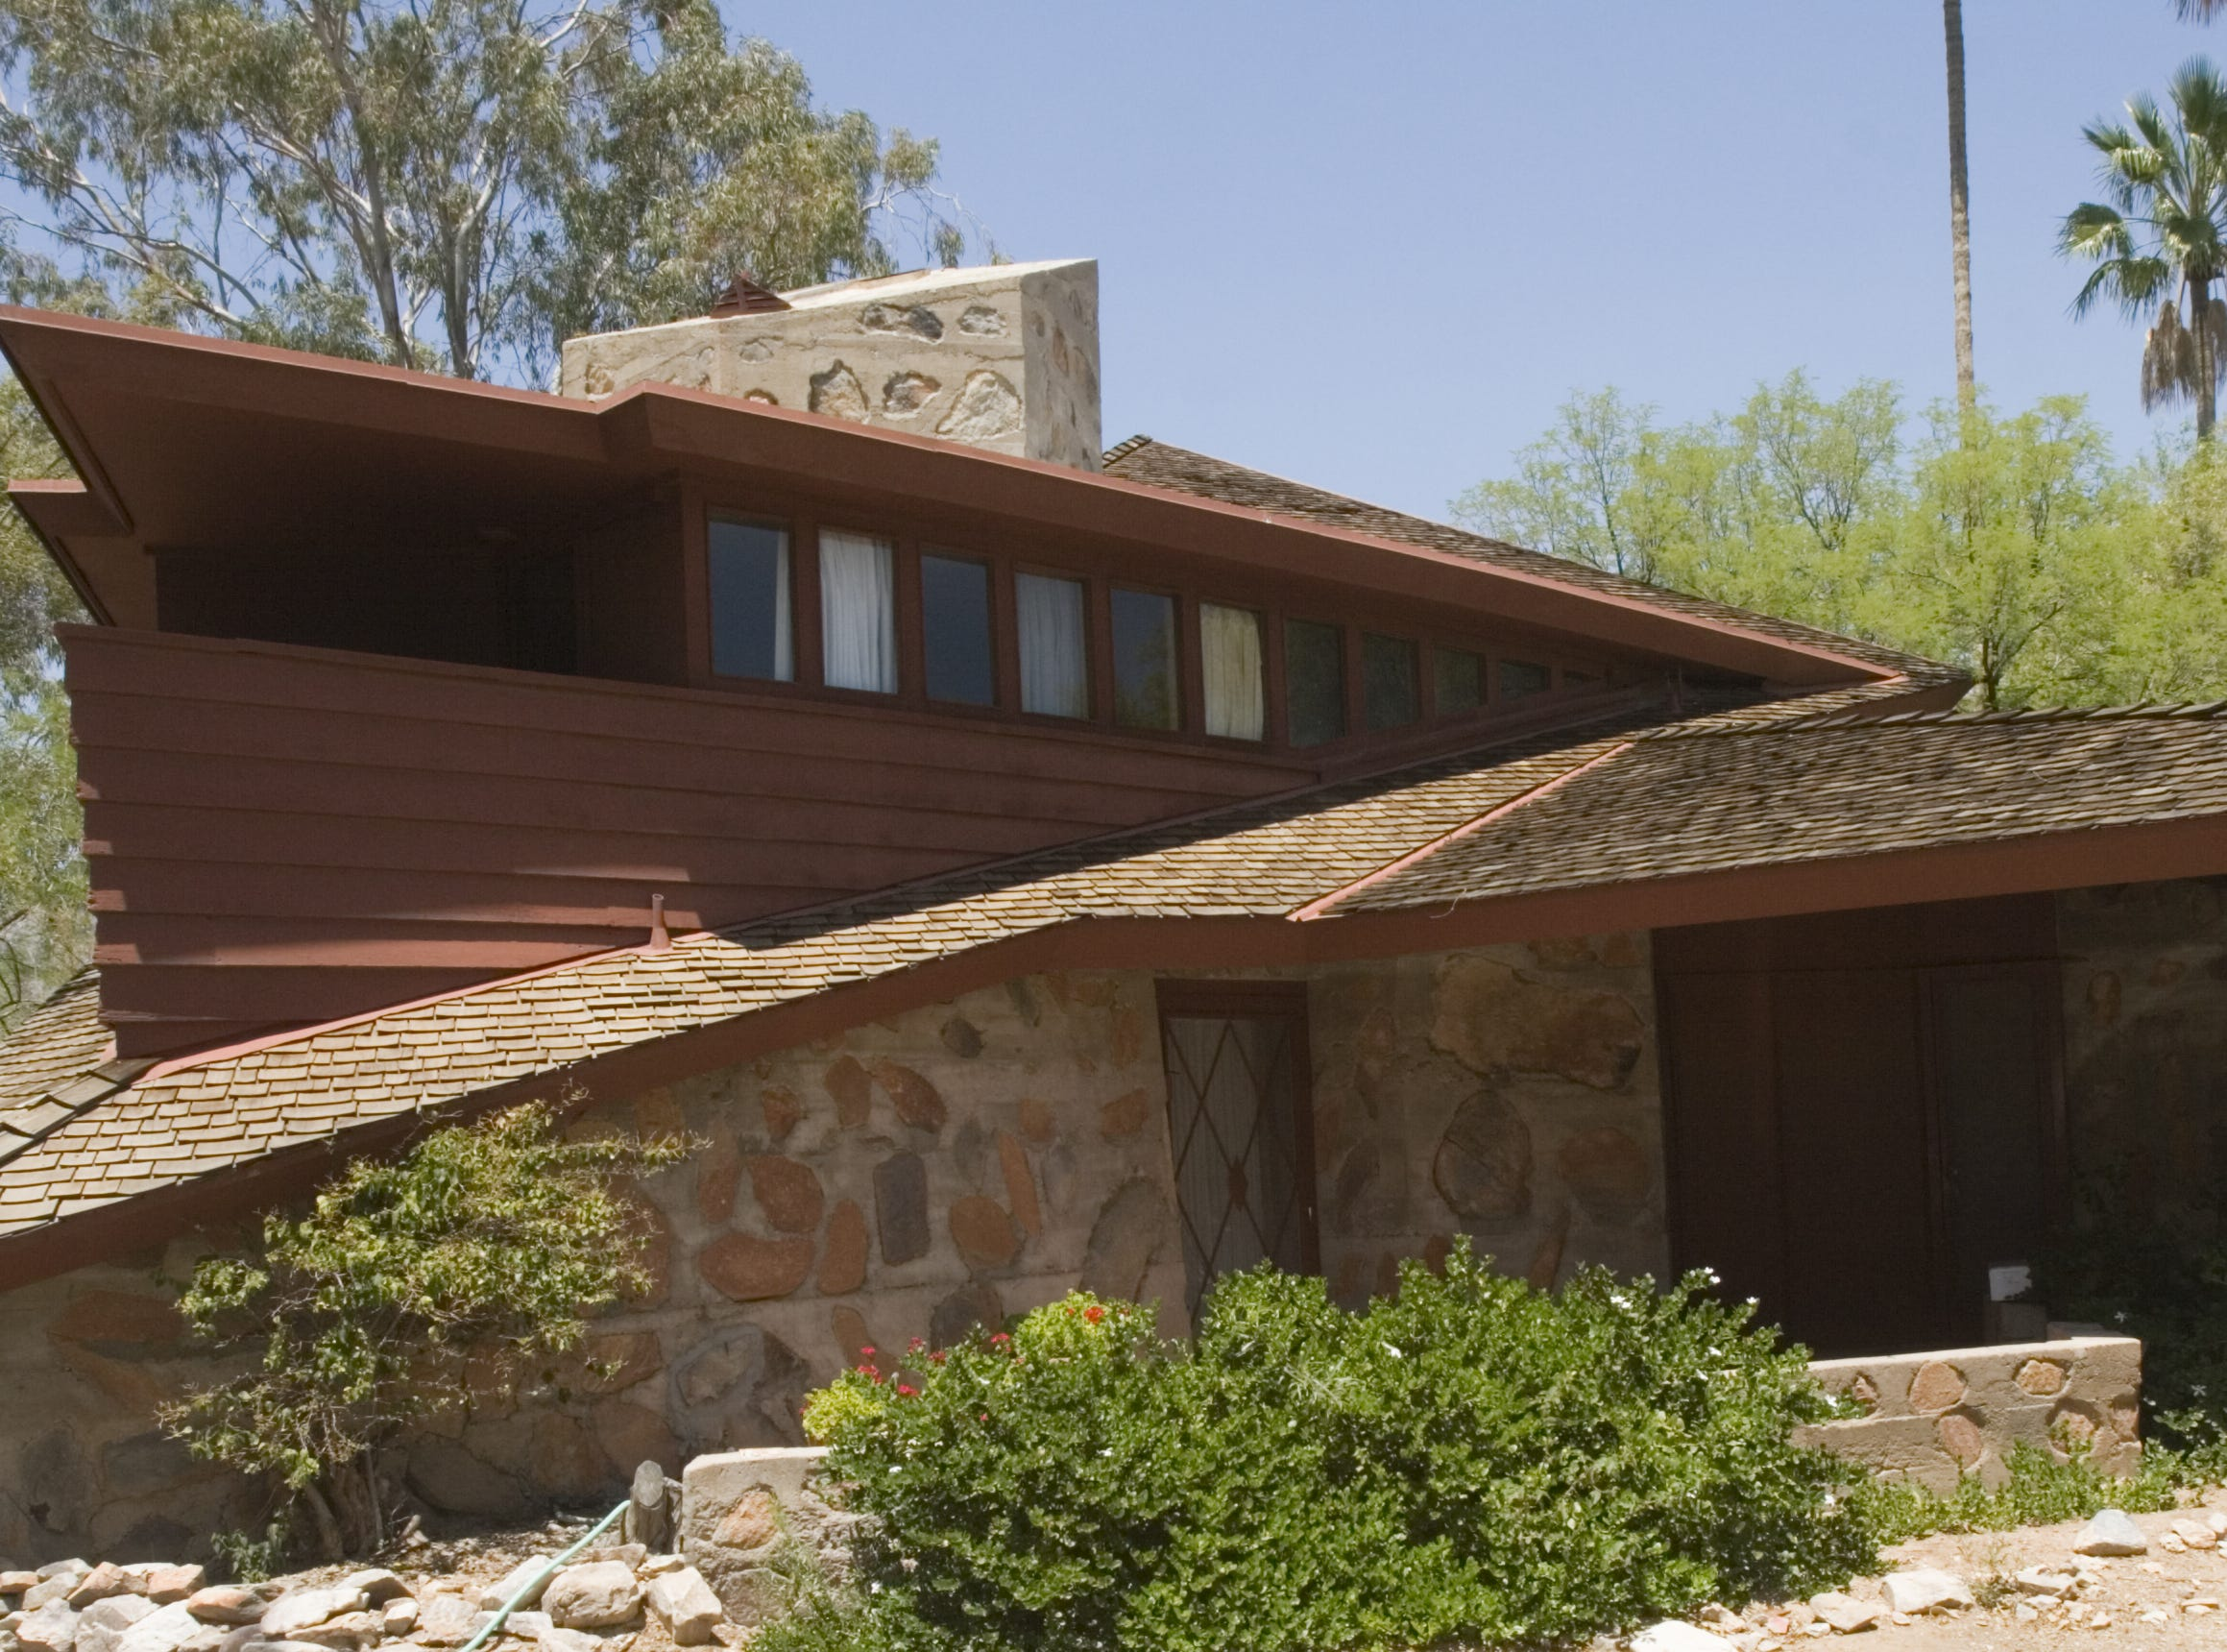 The Boomer Cottage is one of seven surviving private homes in metro Phoenix designed by Frank Lloyd Wright.